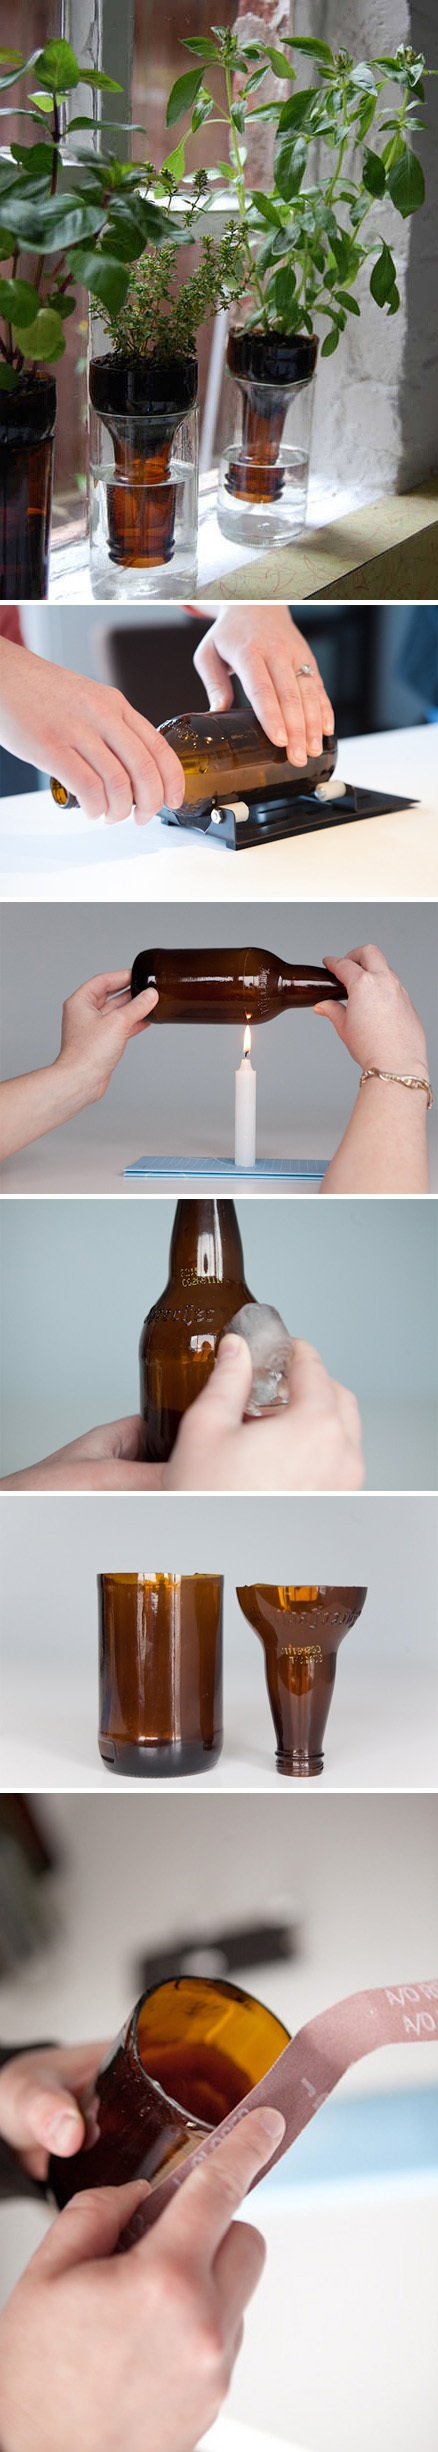 new use of glass bottles ...